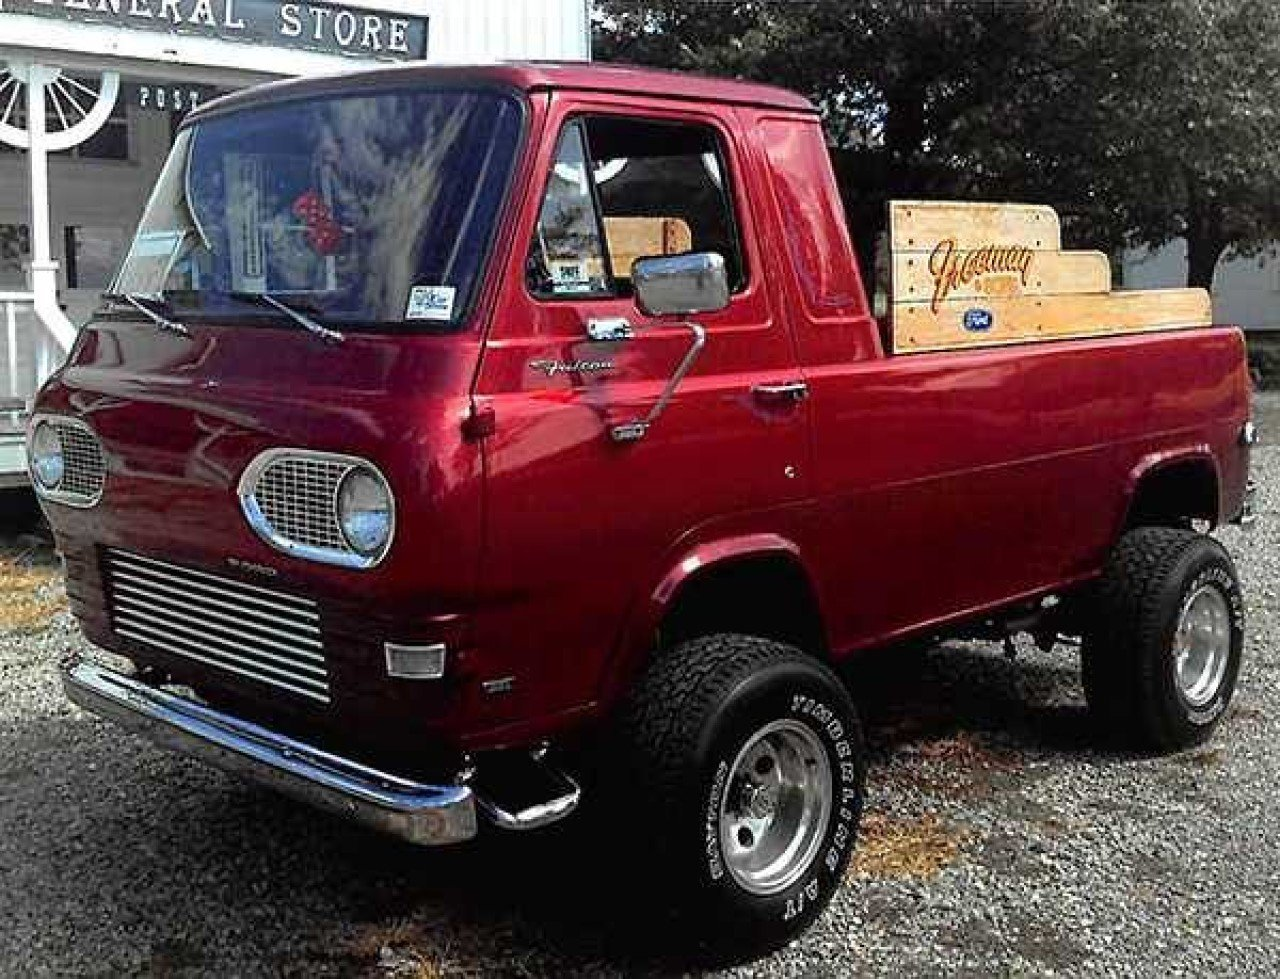 Craigslist Cars And Trucks For Sale >> 1964 Ford Econoline Pickup for sale near Wilkes Barre, Pennsylvania 18709 - Classics on Autotrader